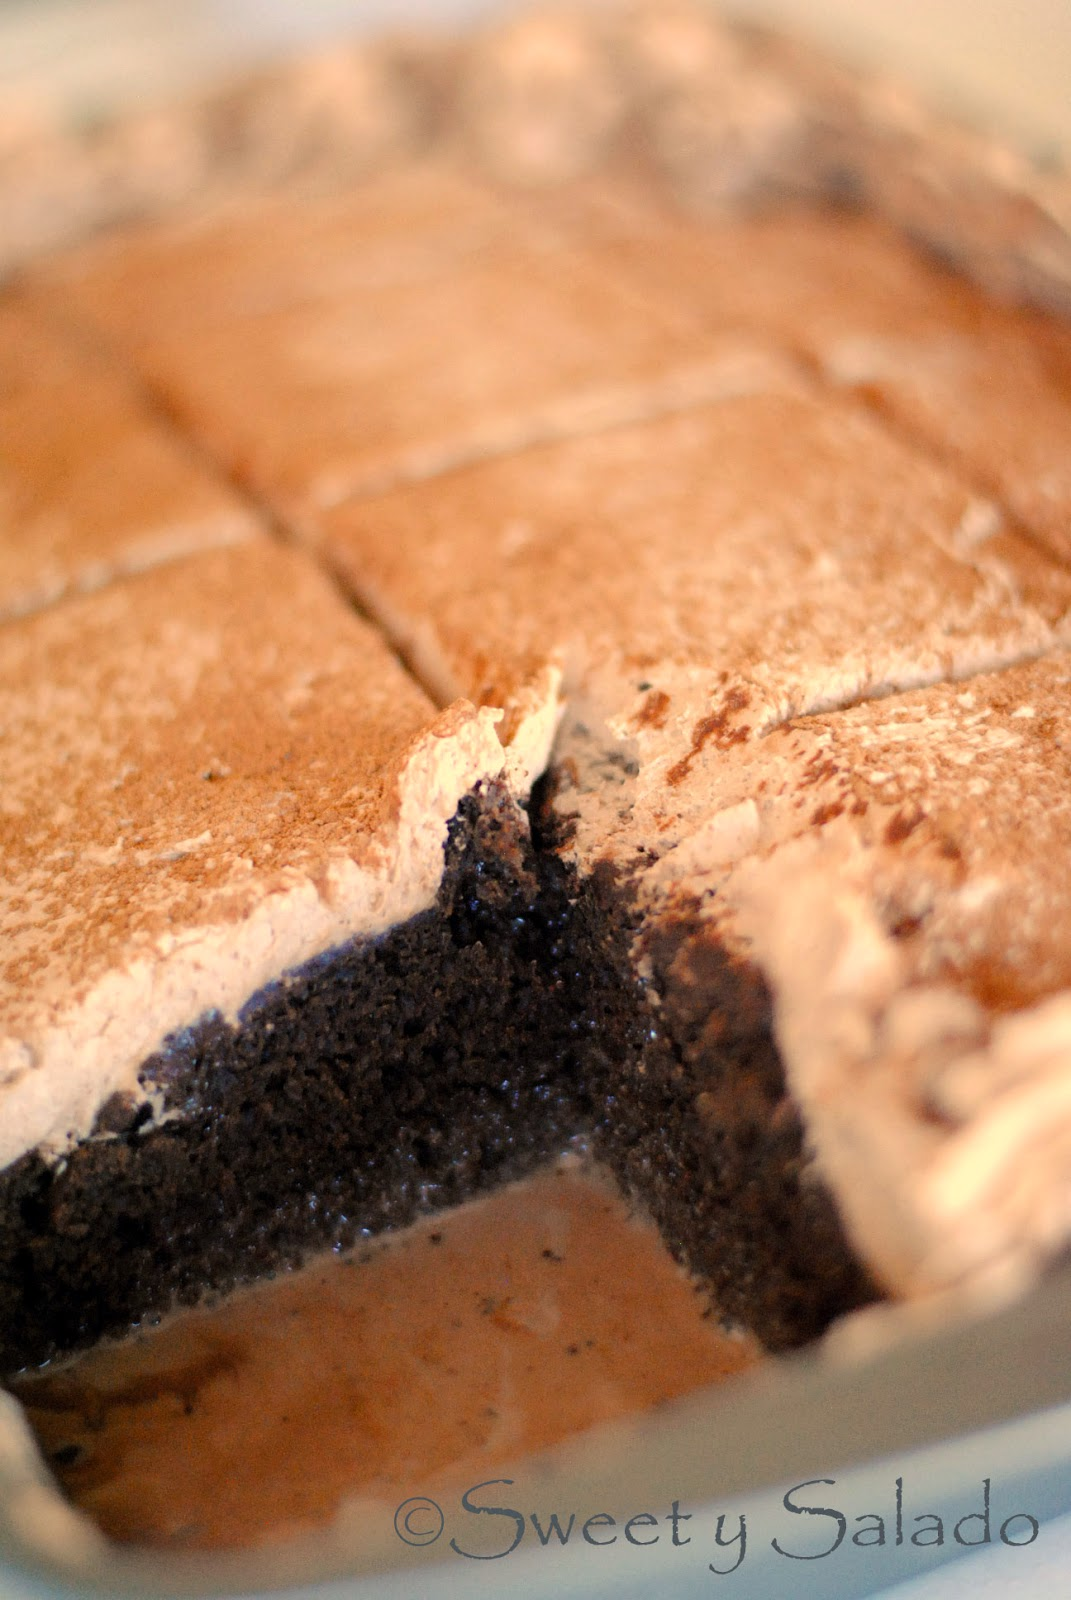 Sweet y Salado: Chocolate Tres Leches Cake